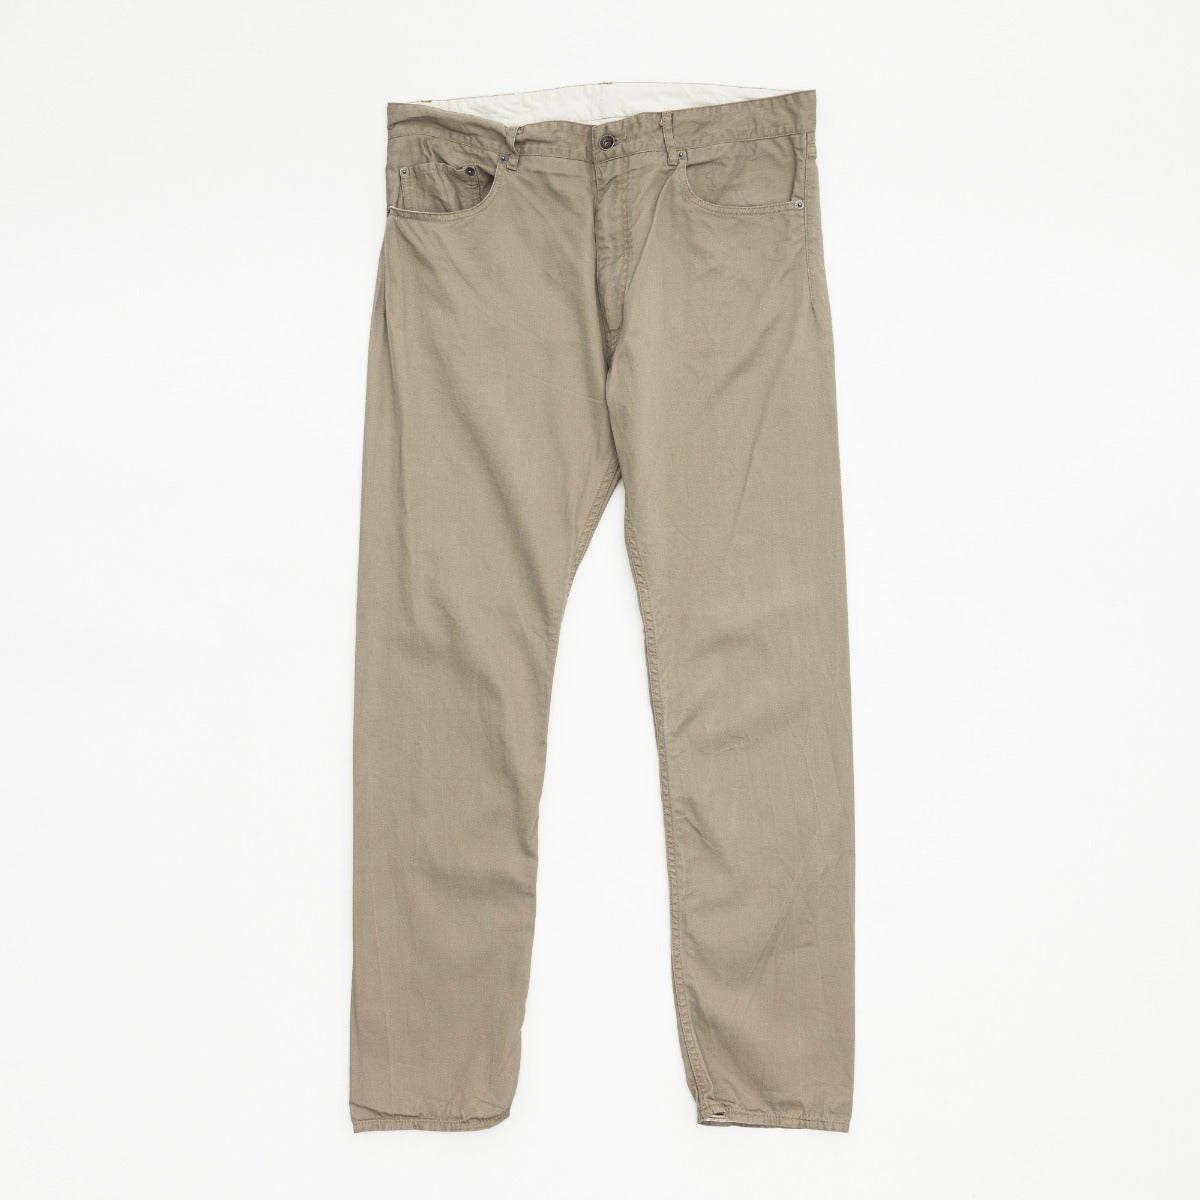 Engineered Garments Simple Chino